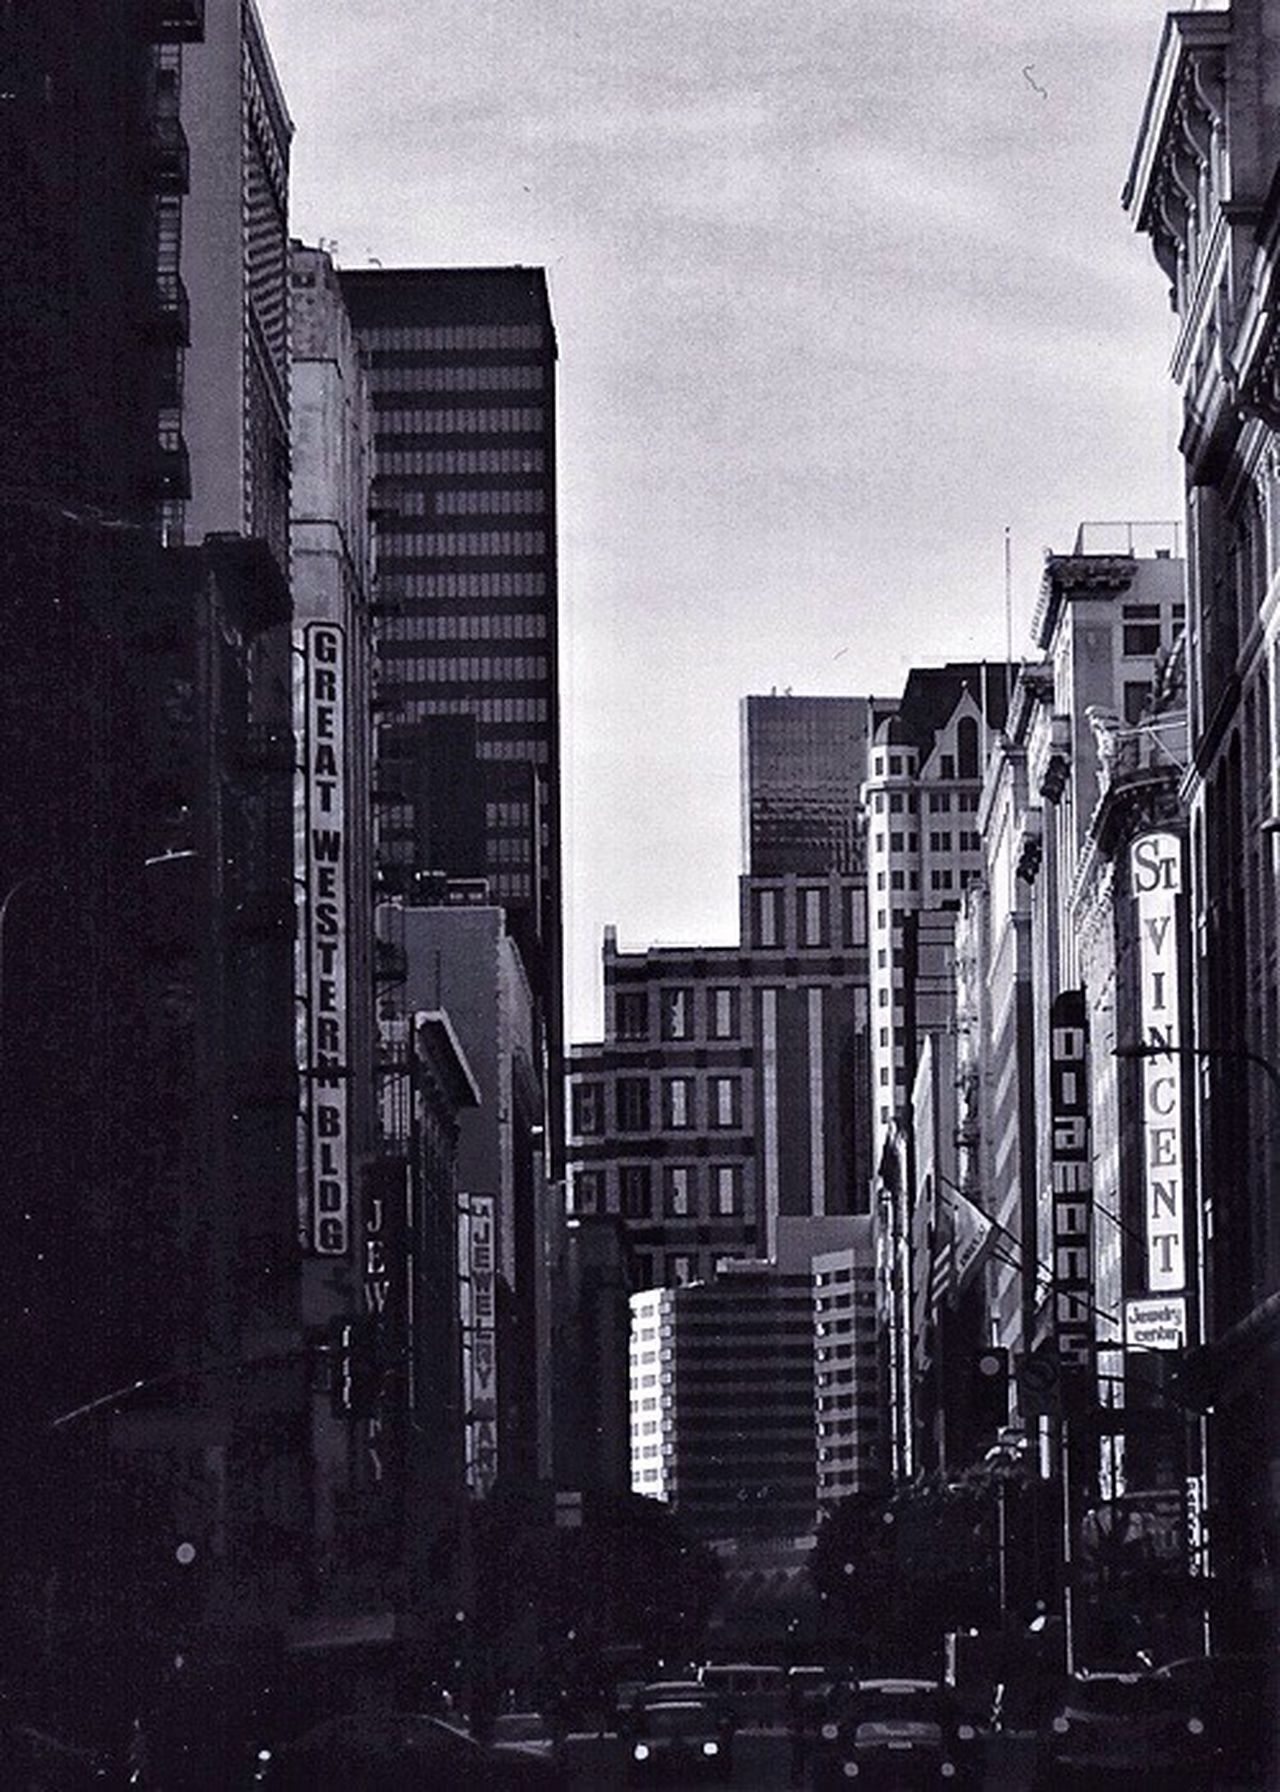 35mm Film Photo- 35mmfilmphotography 35mmphotography Architecture City City Life Cityscape Losangeles Bouqua Mehdi Architecture_collection Architecture_bw Black & White Black And White Blackandwhite Photography Portfolio Work Manual Mode Photography